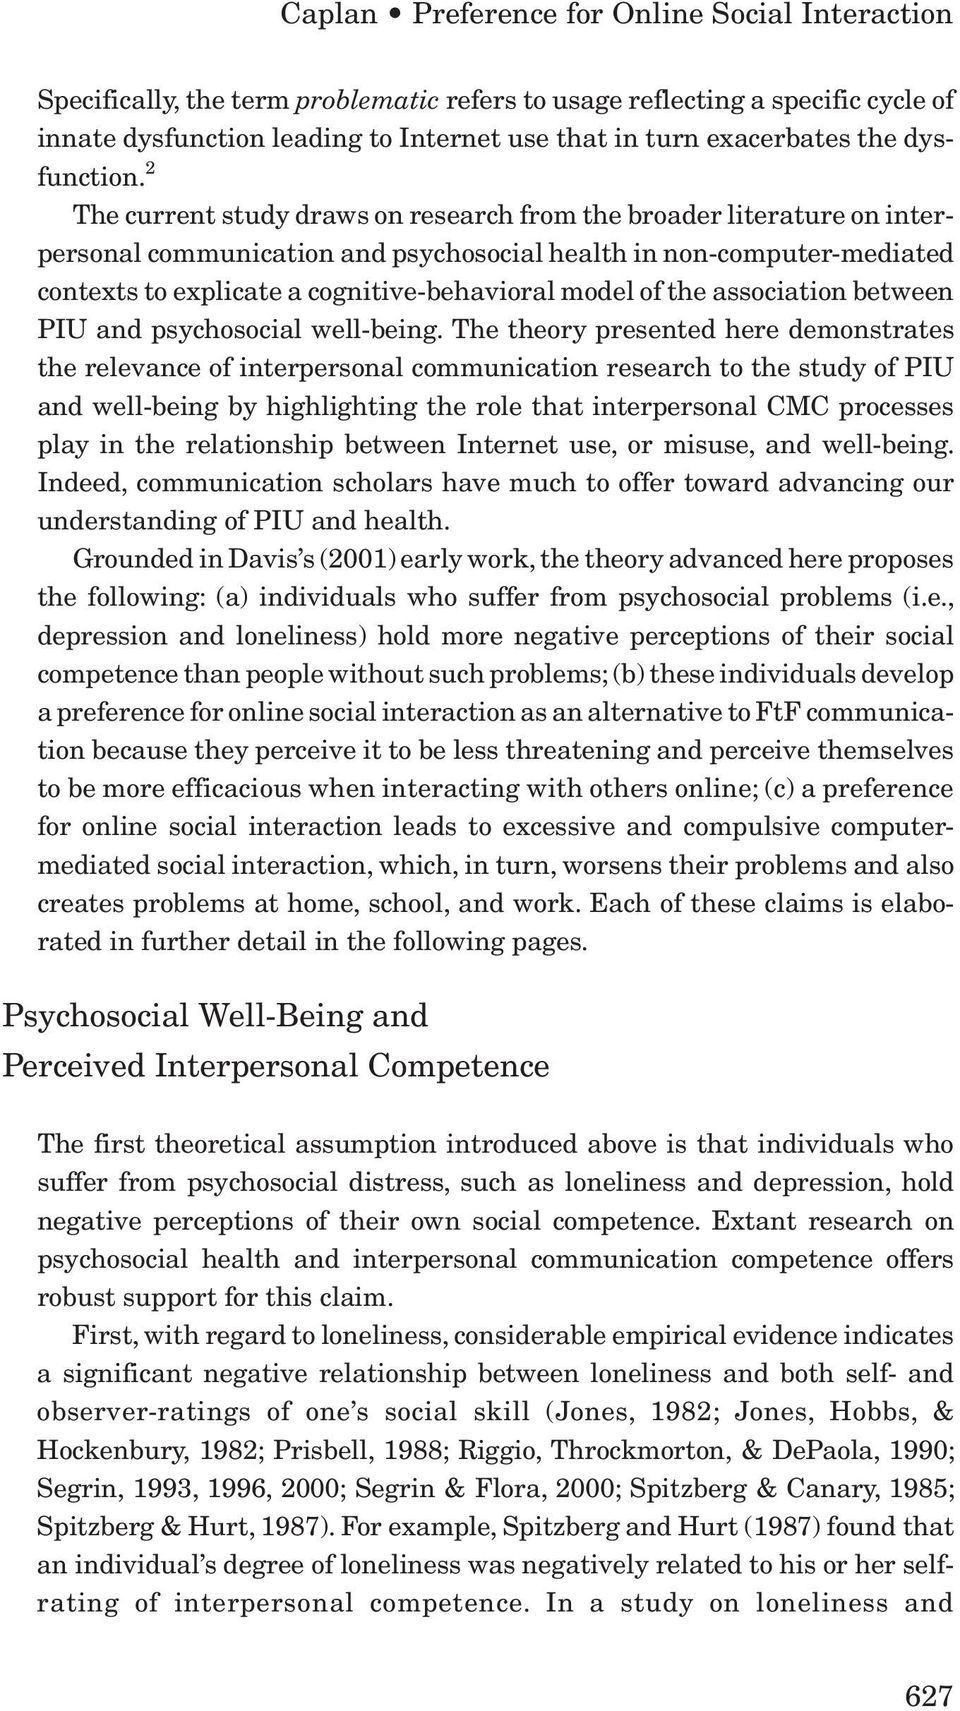 2 The current study draws on research from the broader literature on interpersonal communication and psychosocial health in non-computer-mediated contexts to explicate a cognitive-behavioral model of